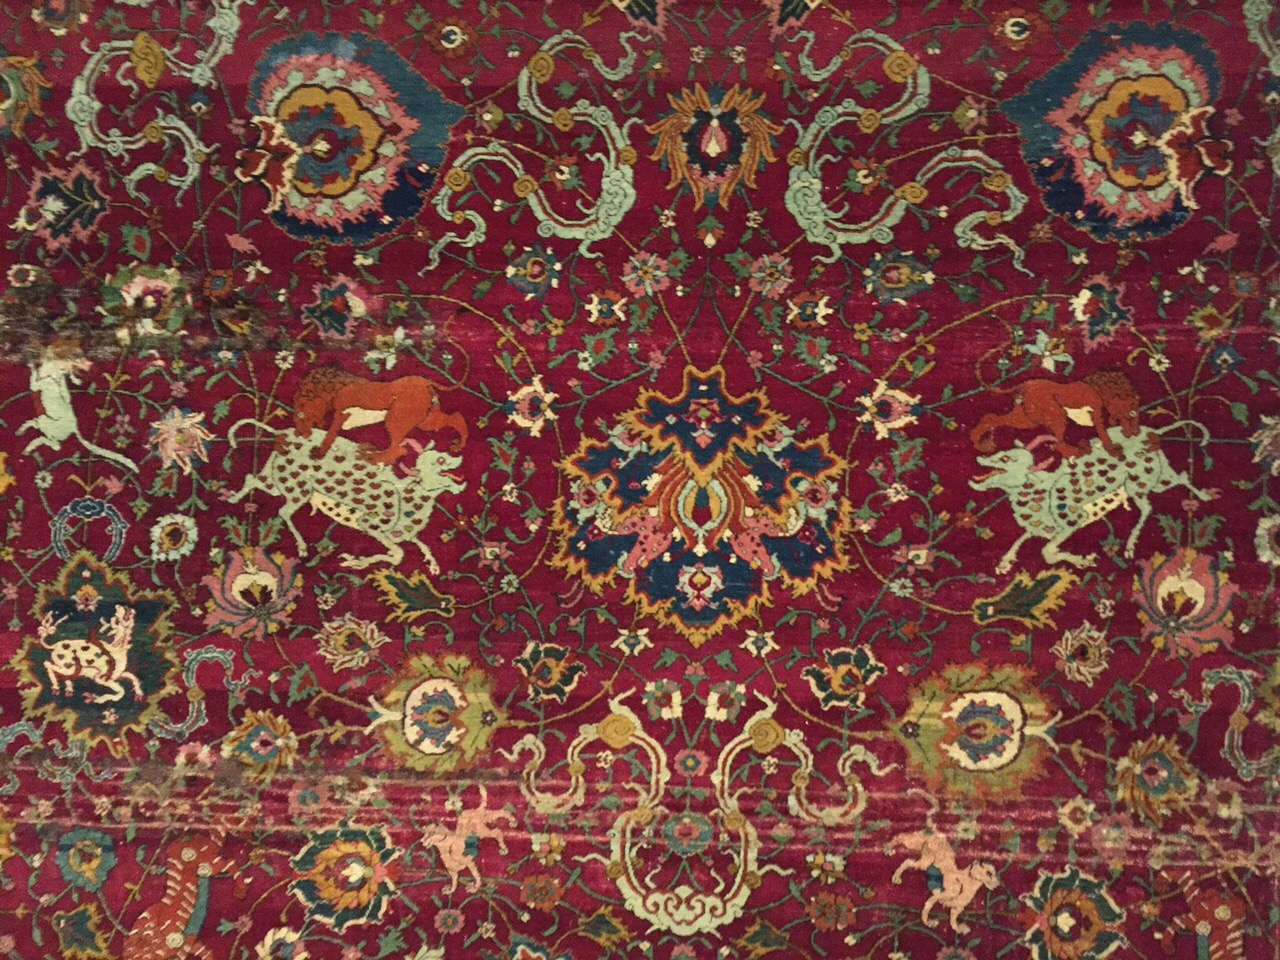 File Hamburg Mkg Safavid Animal Carpet Jpg Wikimedia Commons